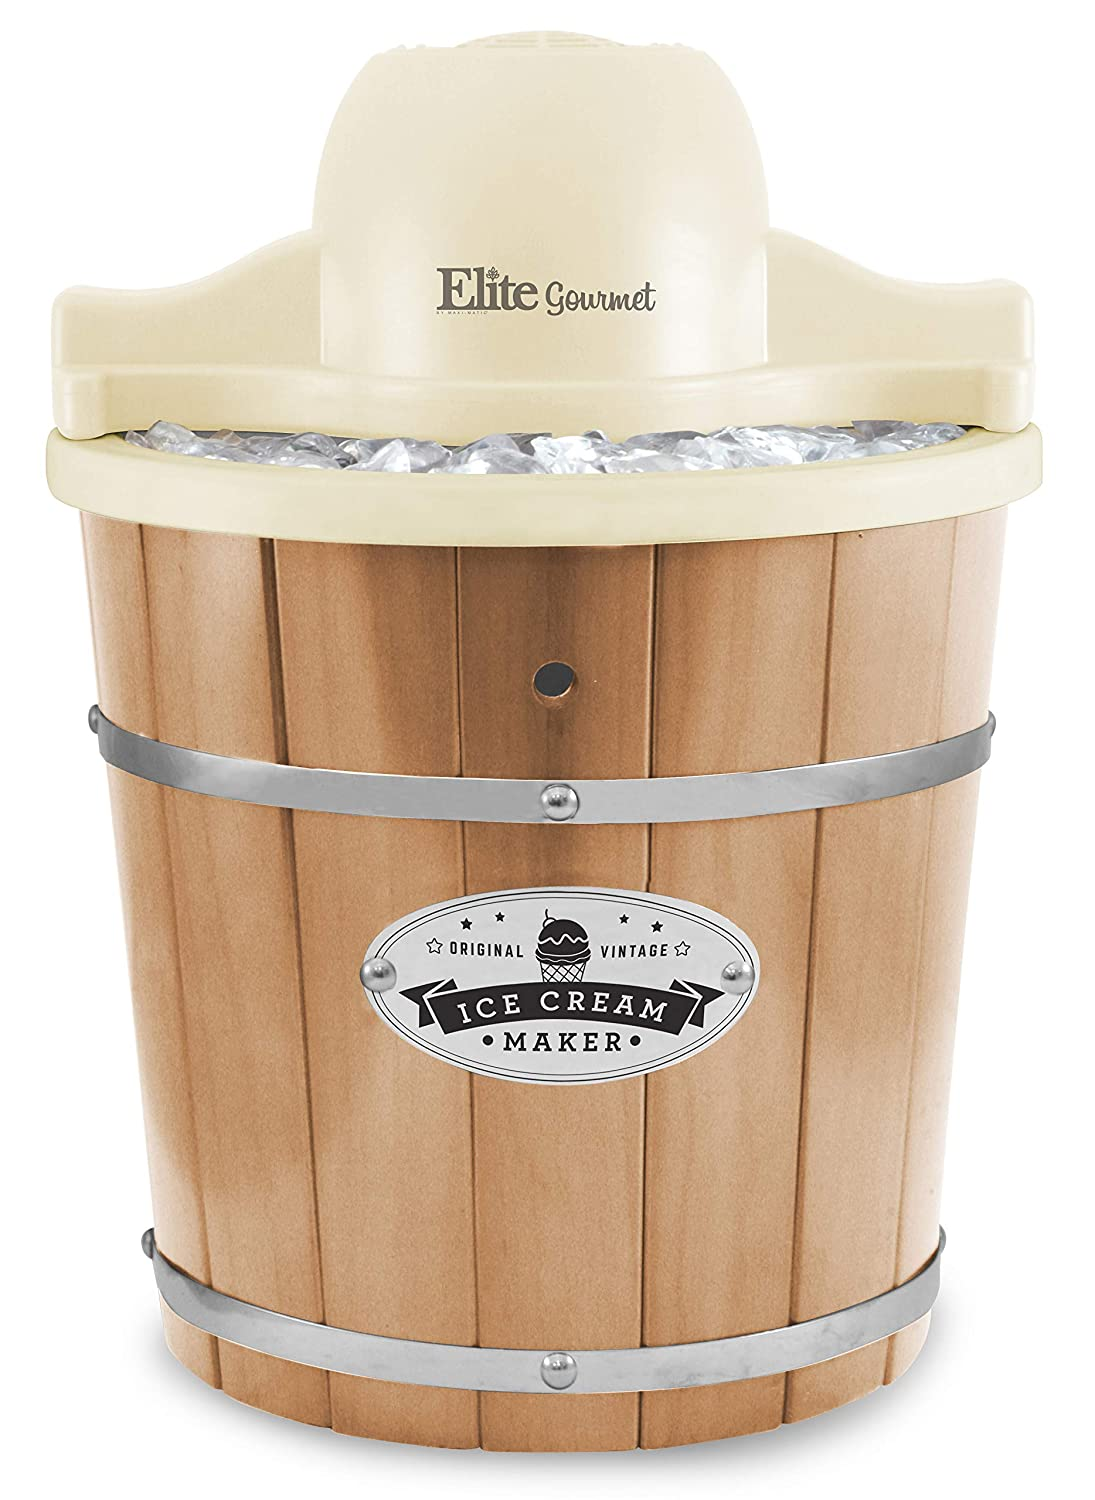 Elite Gourmet EIM-924L Old Fashioned Vintage Appalachian Wood Bucket Electric Maker Machine with Leak-Proof Liner, Uses Rock Salt Churns Ice Cream in Minutes, 4 Quart, Pine